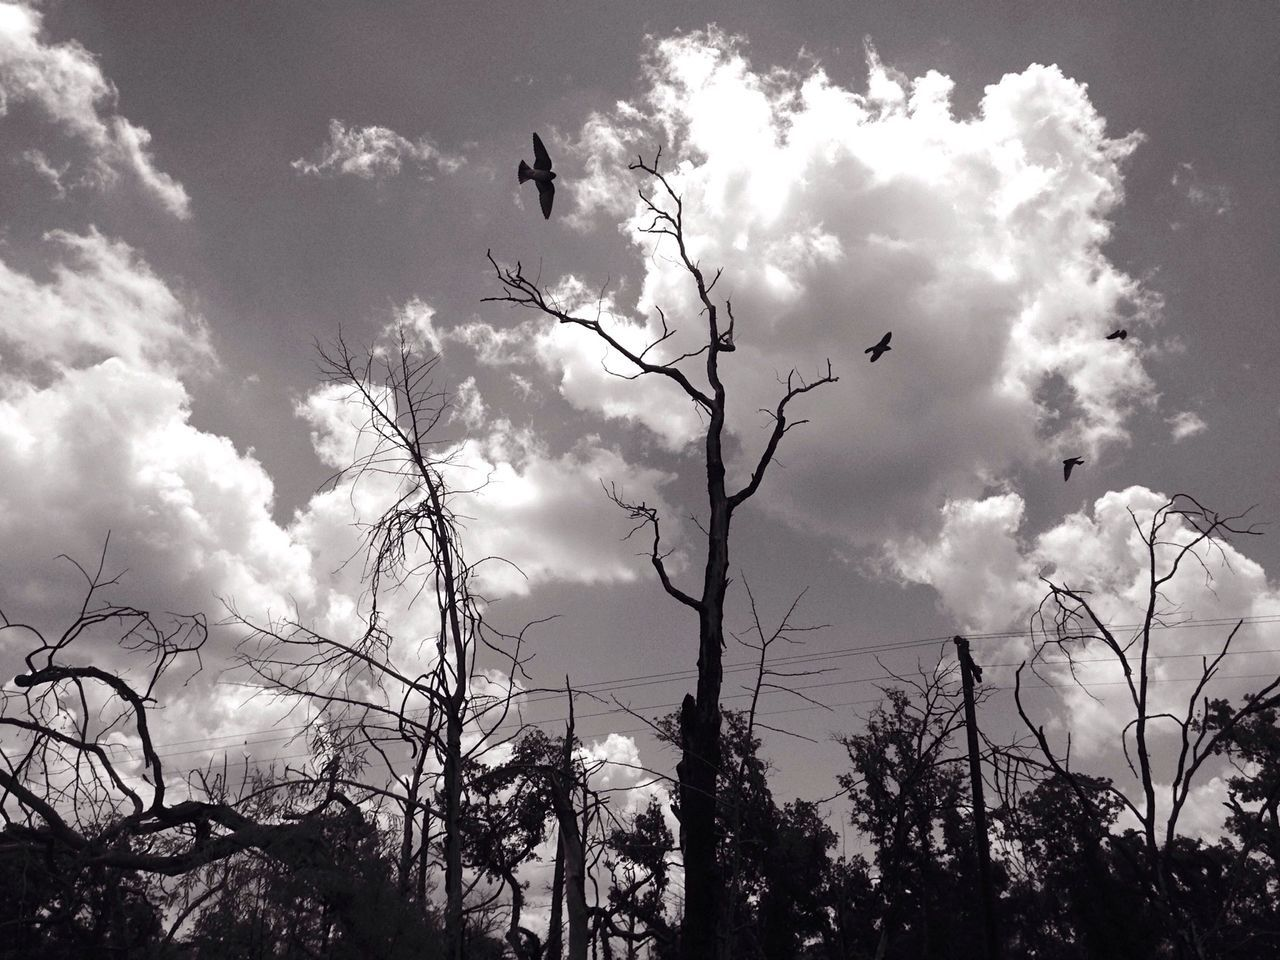 One of our favorite photographs, this monochromatic masterpiece features birds in flight around ominous looking trees. Birds Art This Week On Eye Em Landscape Gorgeous Beautiful Monochrome South Texas Composition